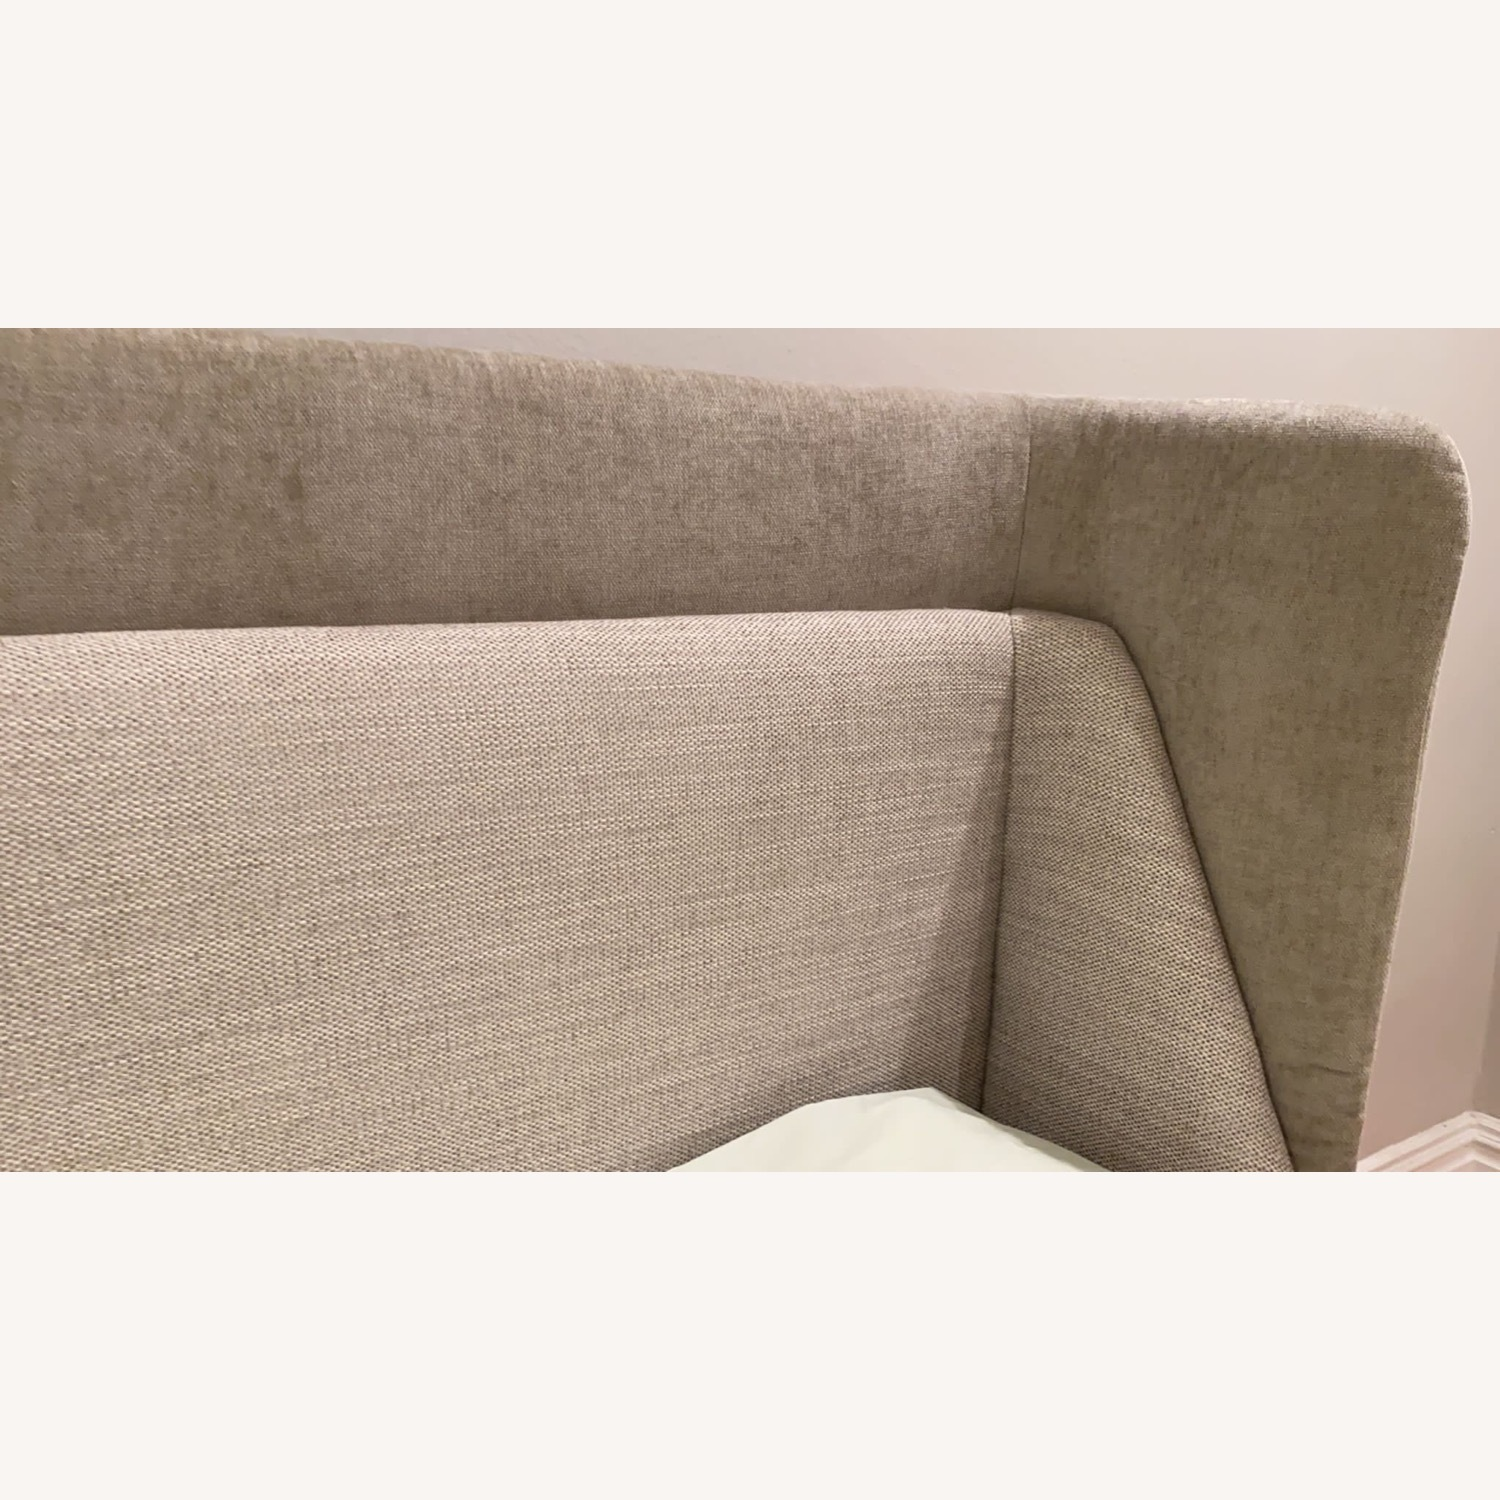 West Elm Thea Wing Bed (King Size) - image-4